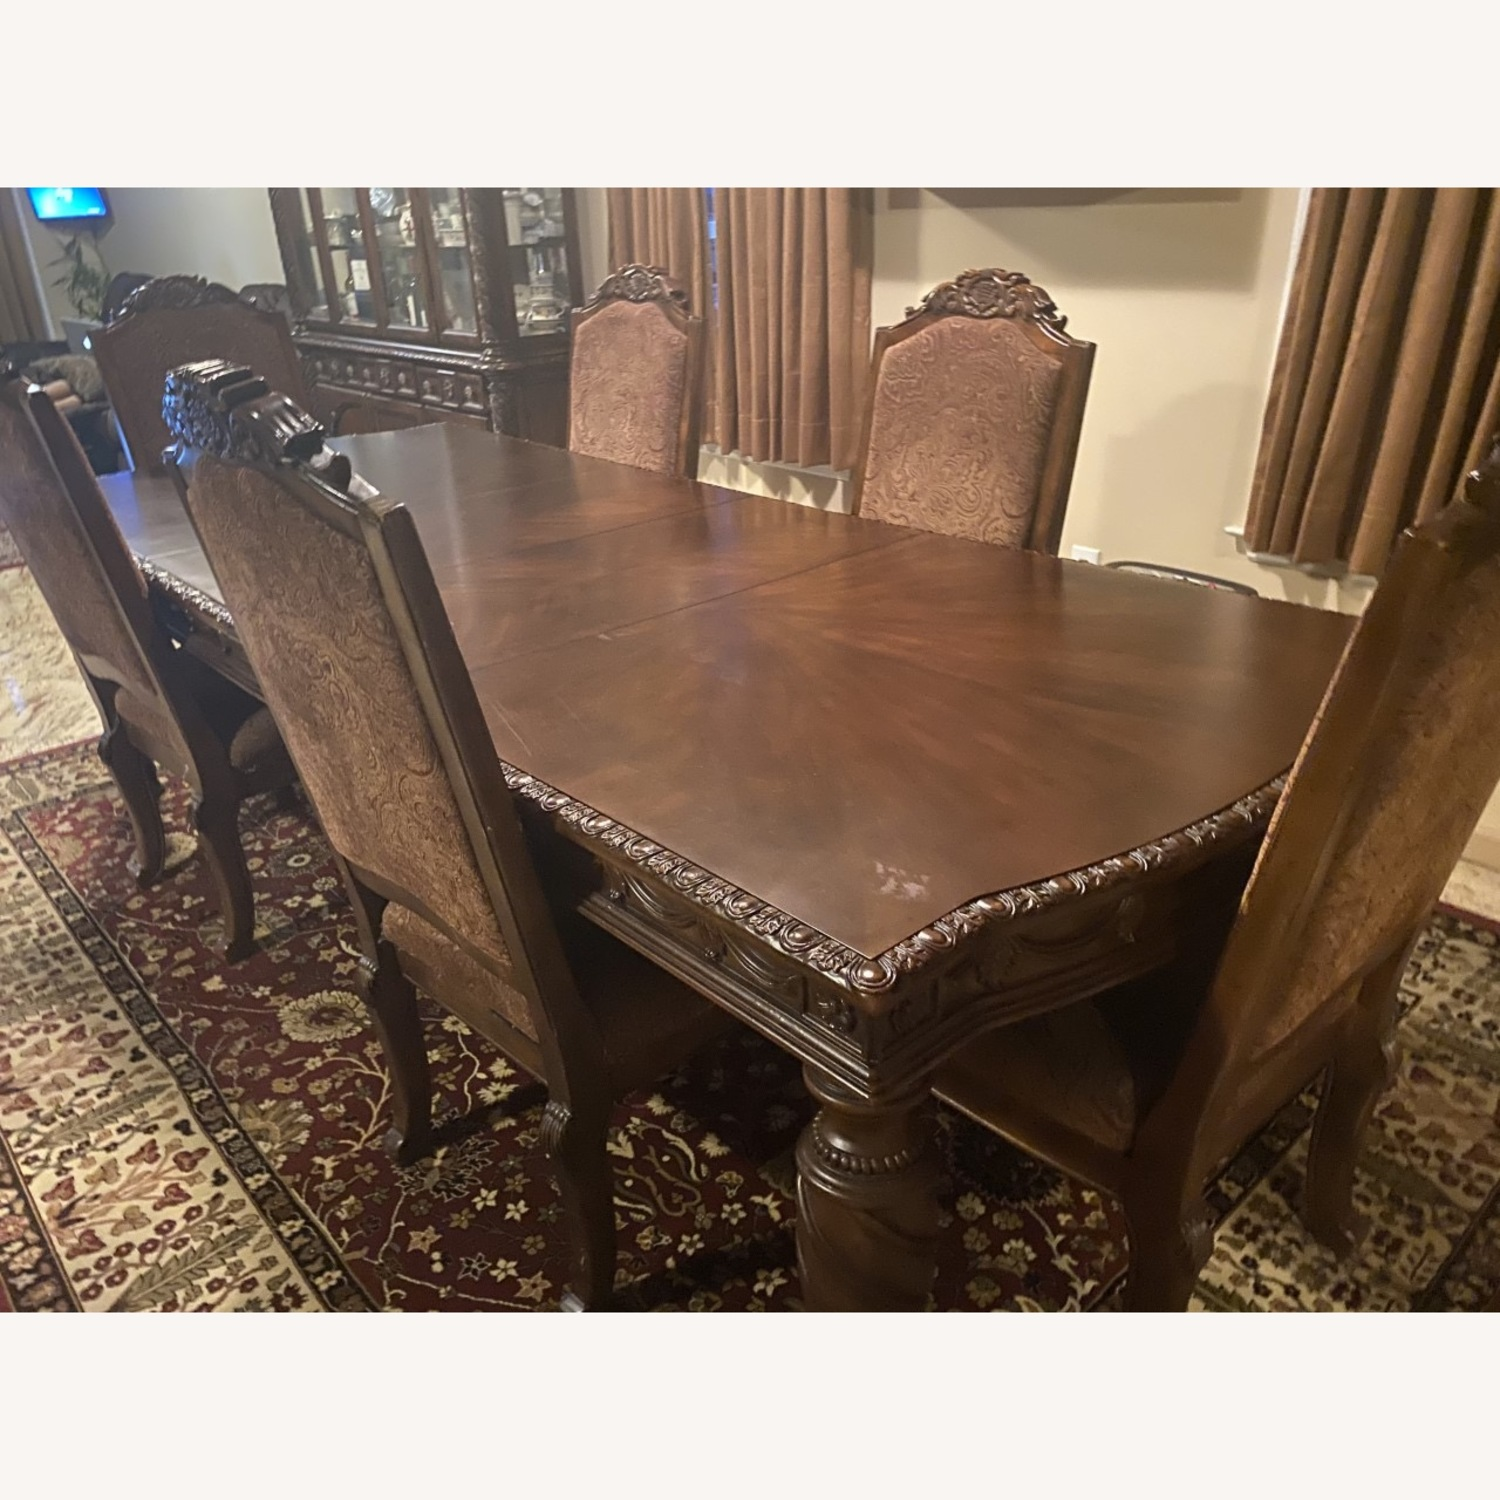 Ashely Furniture 6 pc Dining Table - image-1